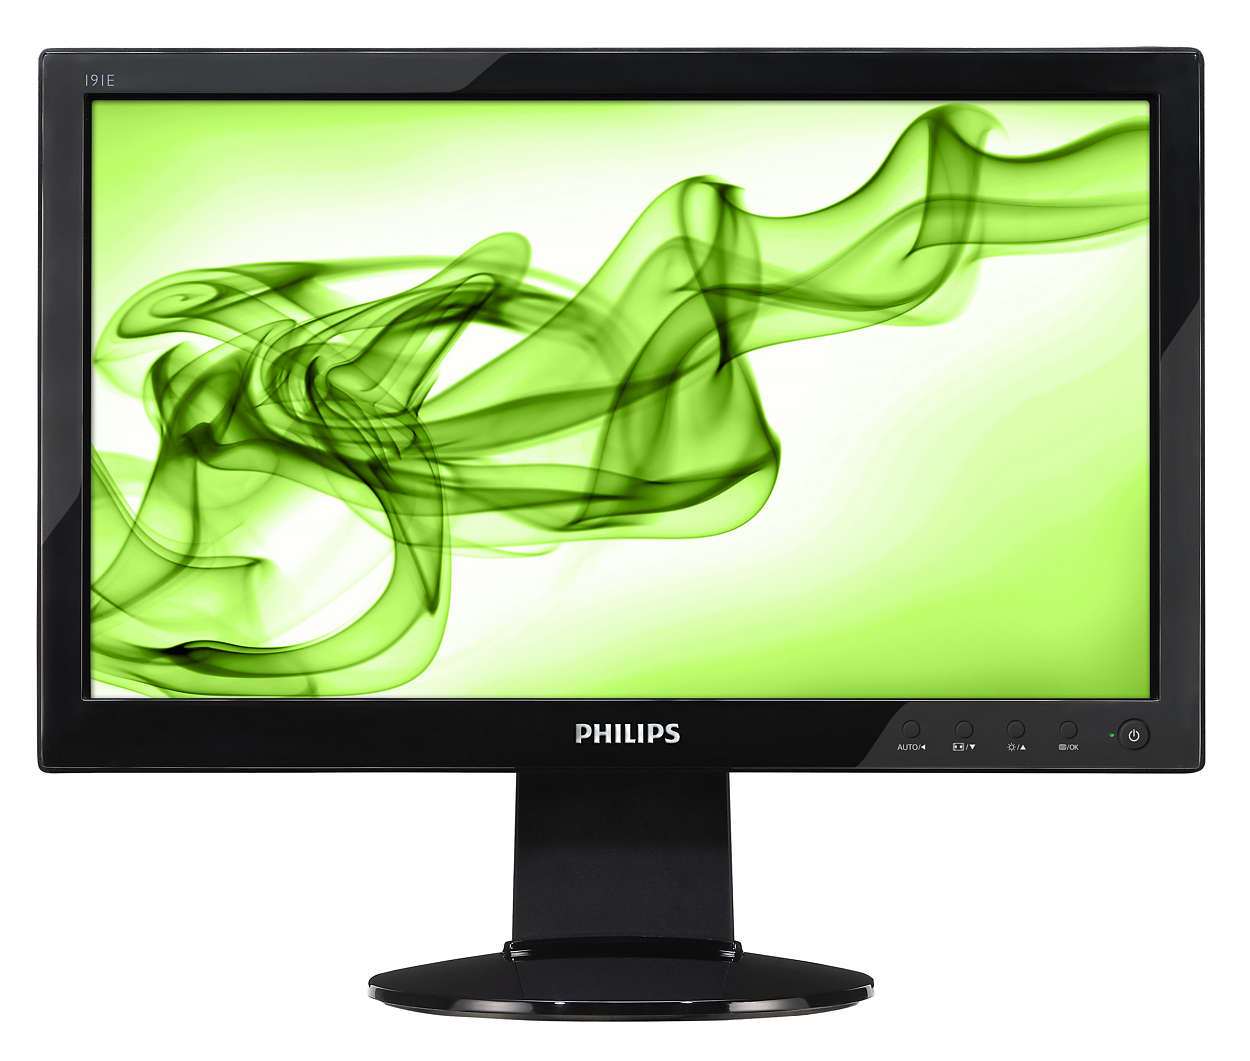 Attractive 16:9 HD display offers great value